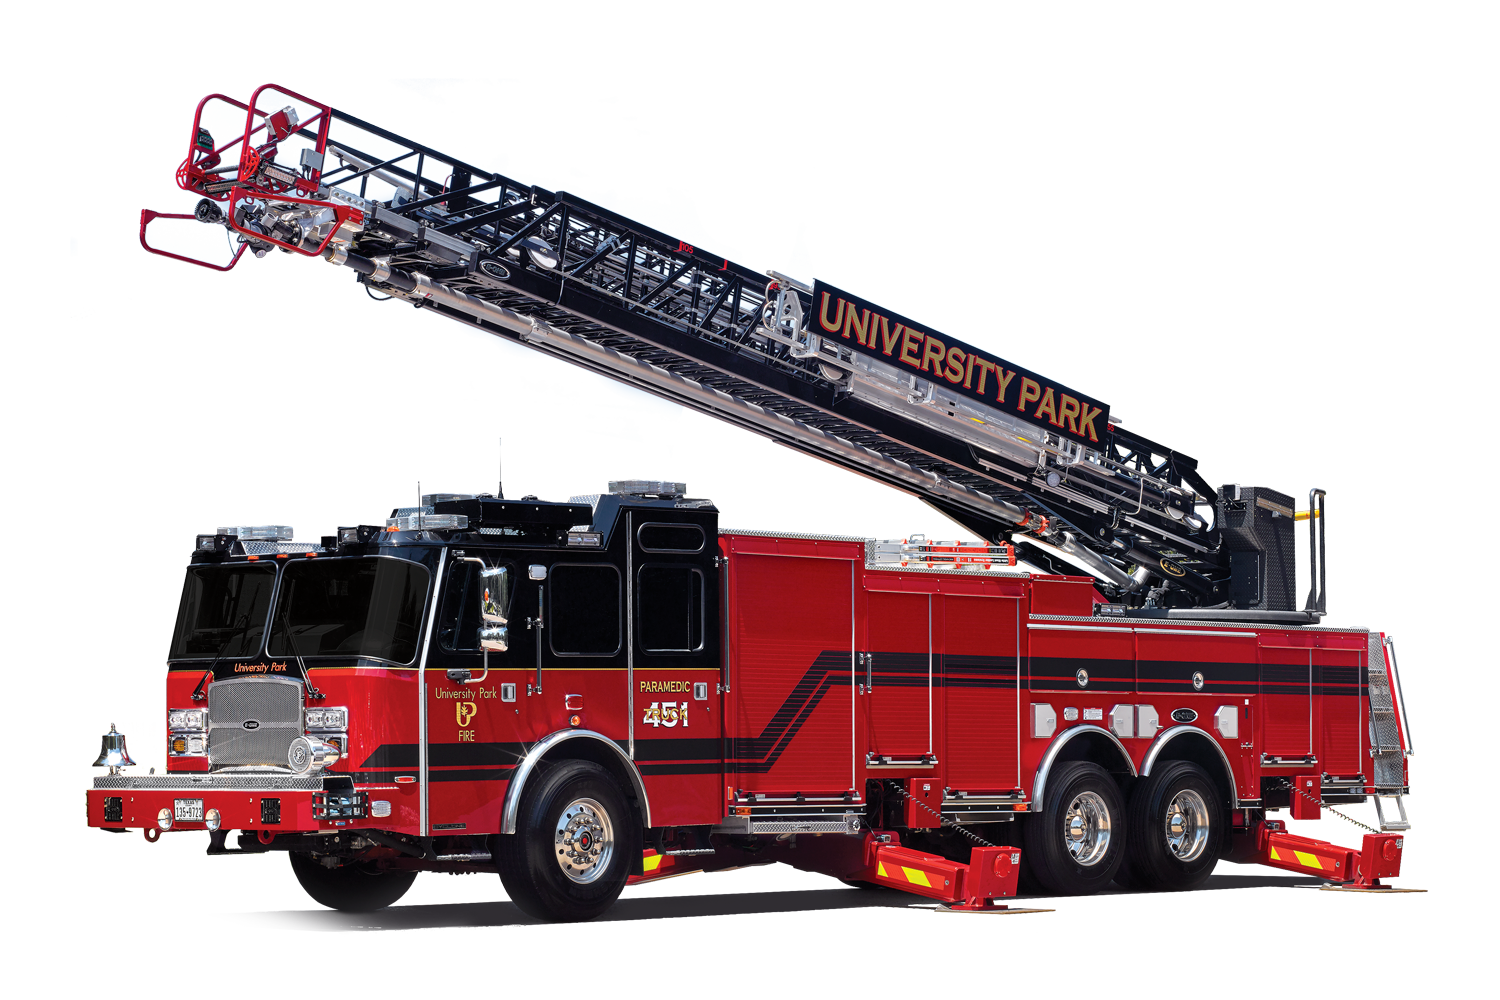 Fire ladder png. E one aerial ladders